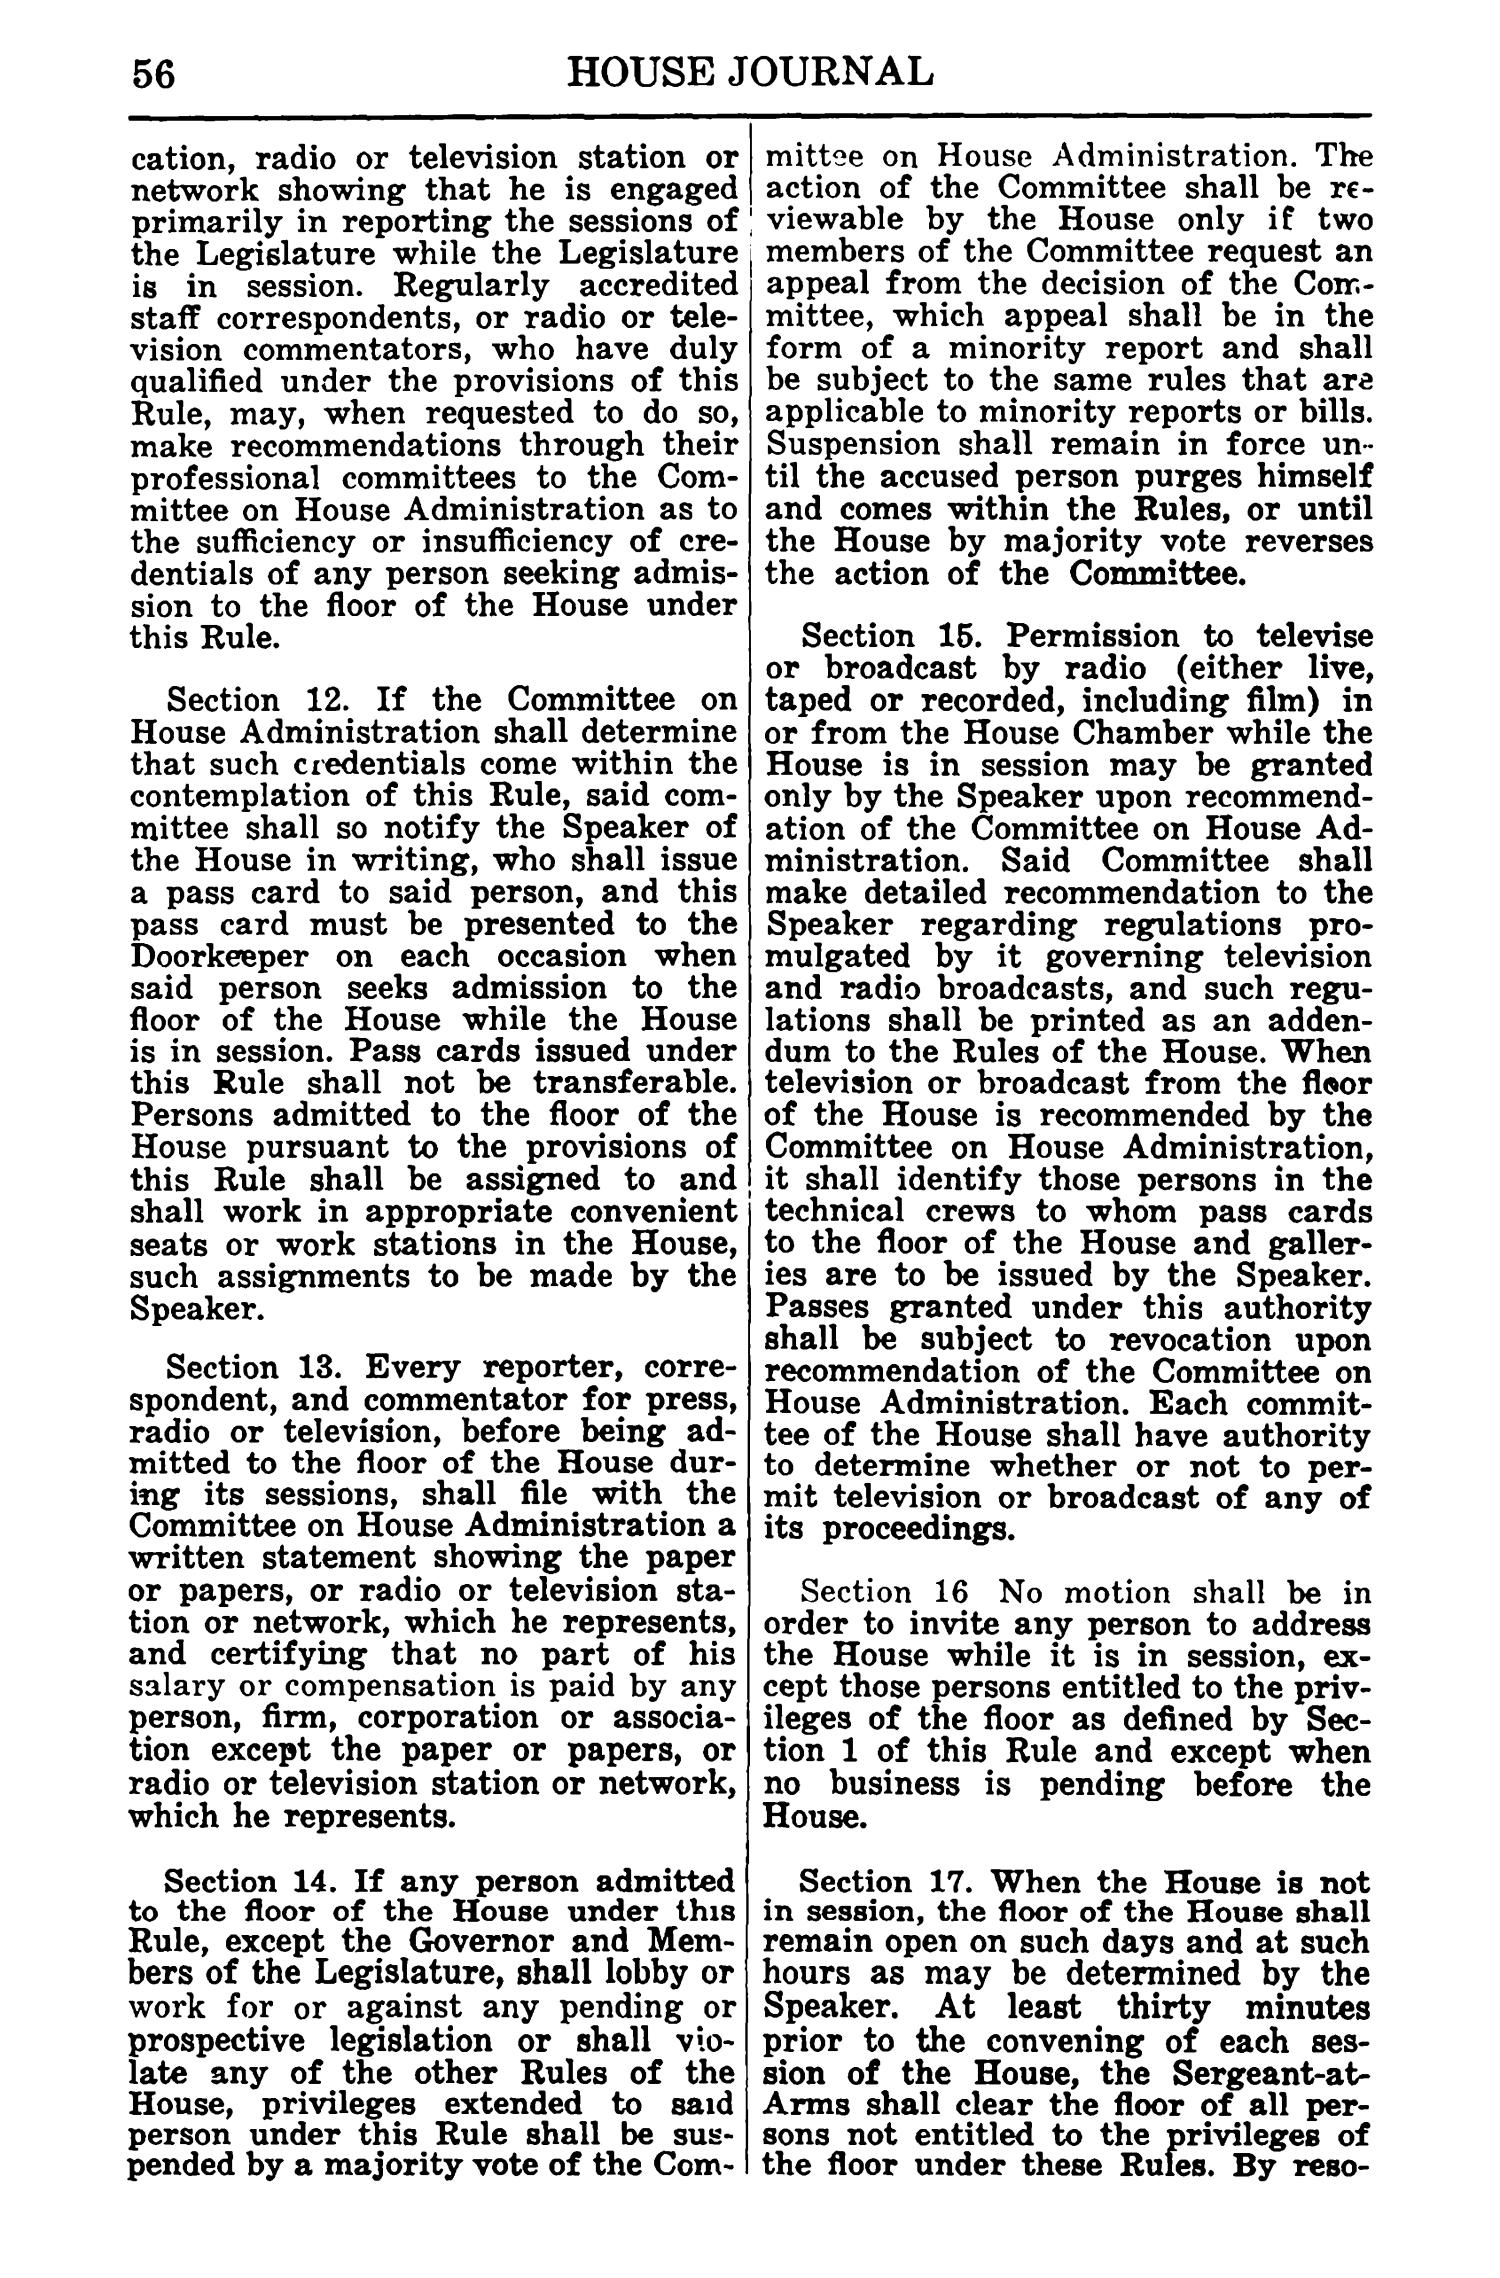 Journal of the House of Representatives of the Regular Session of the Sixtieth Legislature of the State of Texas, Volume 1                                                                                                      56